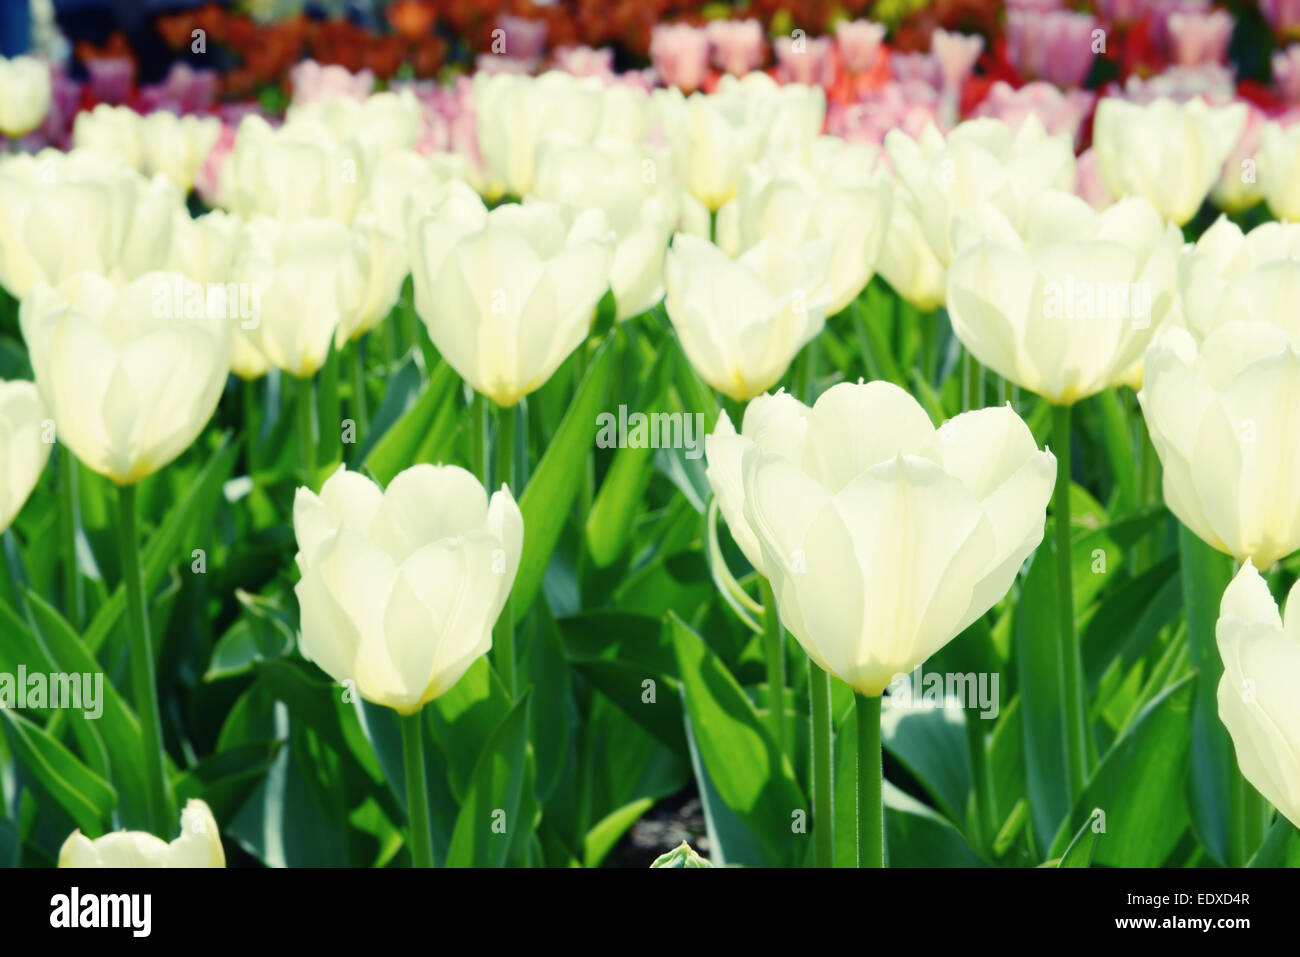 white tulips on flowerbed. back lit and cross processing - Stock Image